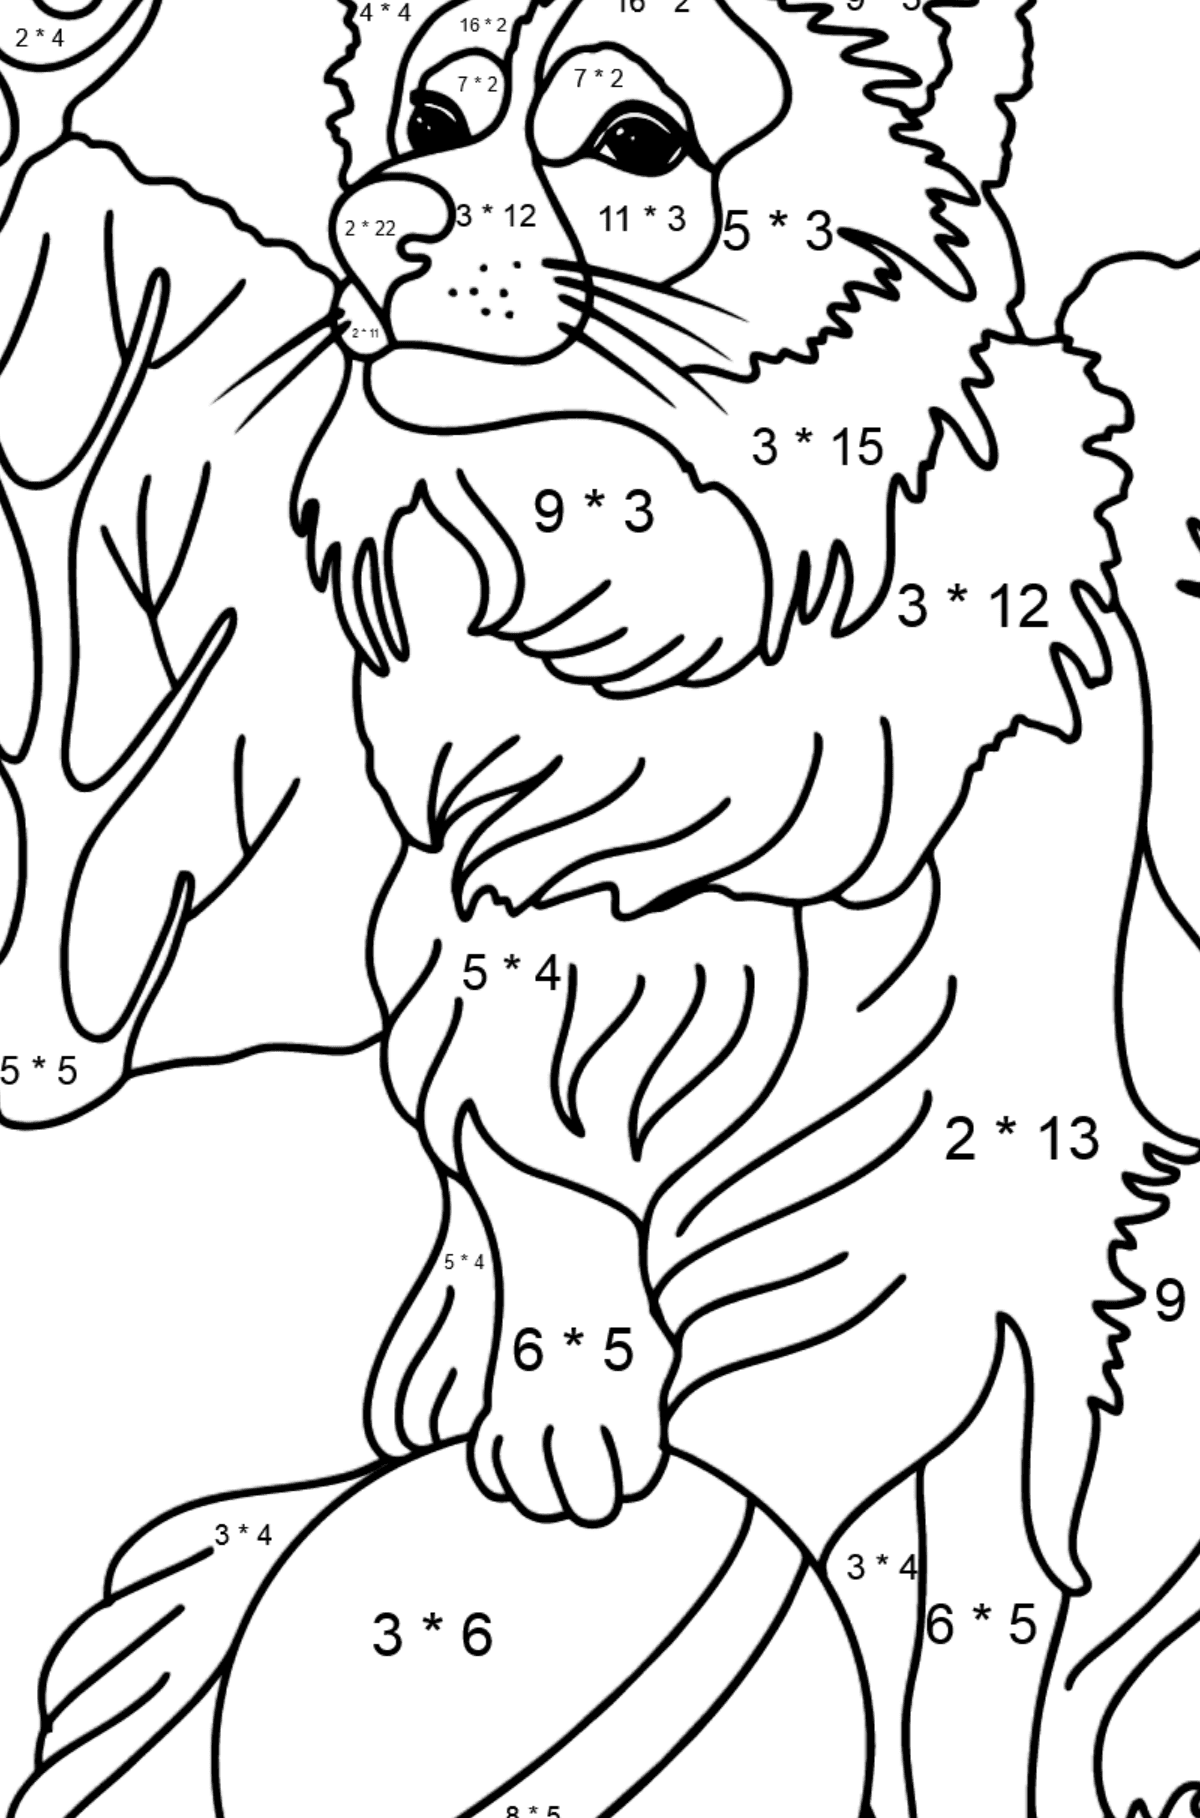 Collie coloring page - Math Coloring - Multiplication for Kids